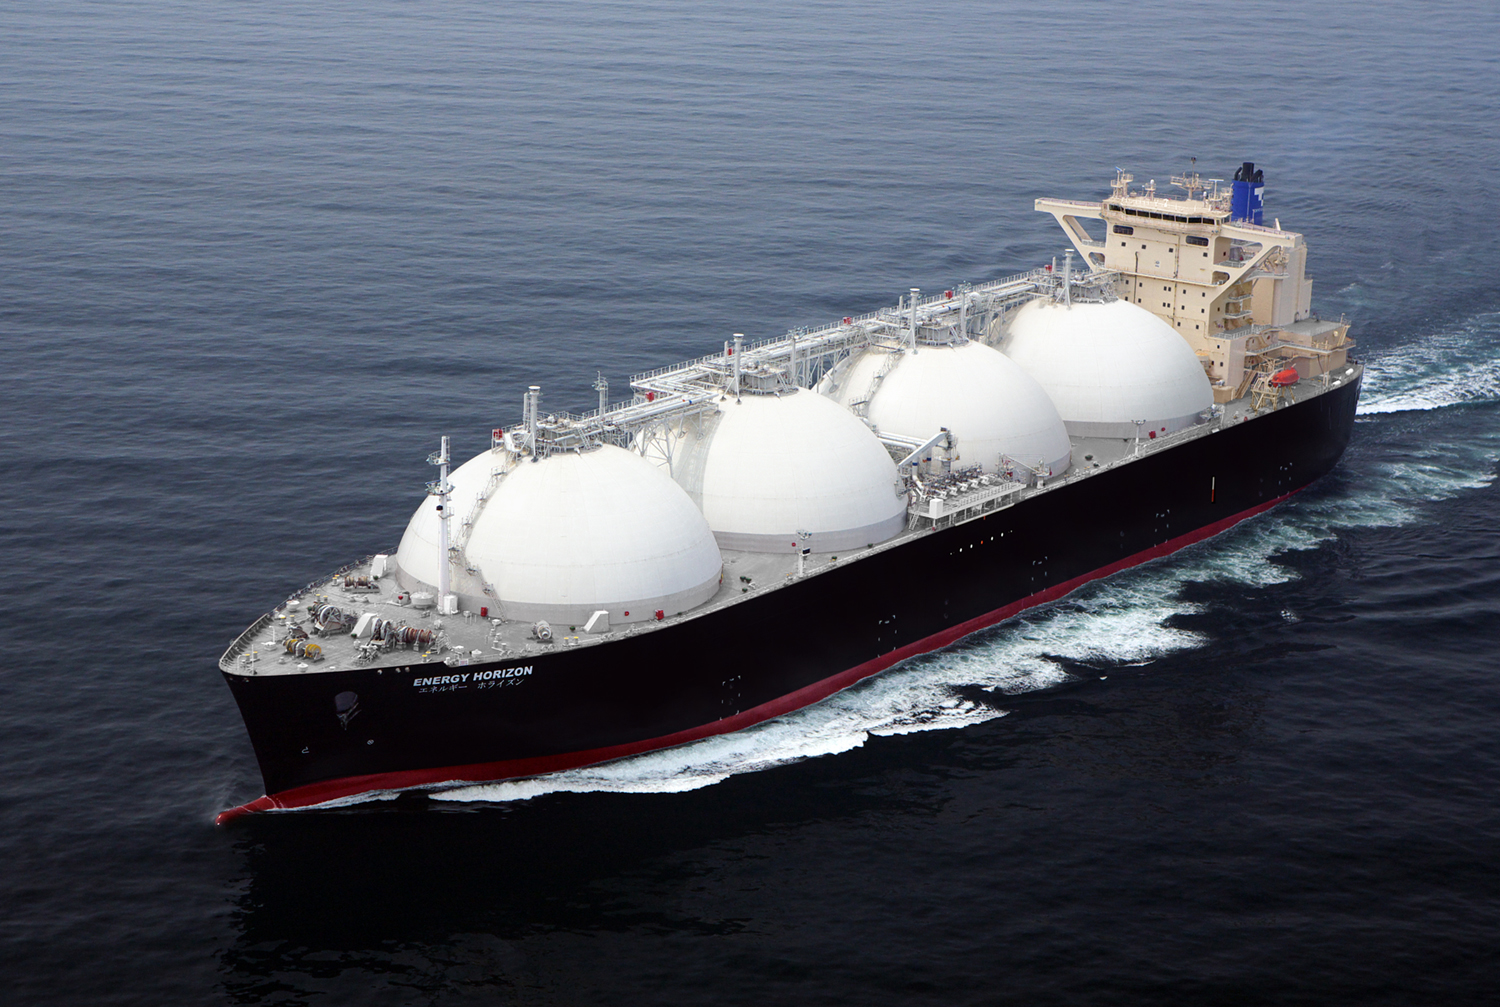 Energy Horizon, 300m long, 52m wide LNG tanker built at the Sakaide Shipyard of Kawasaki Shipbuilding Corporation in 2011.